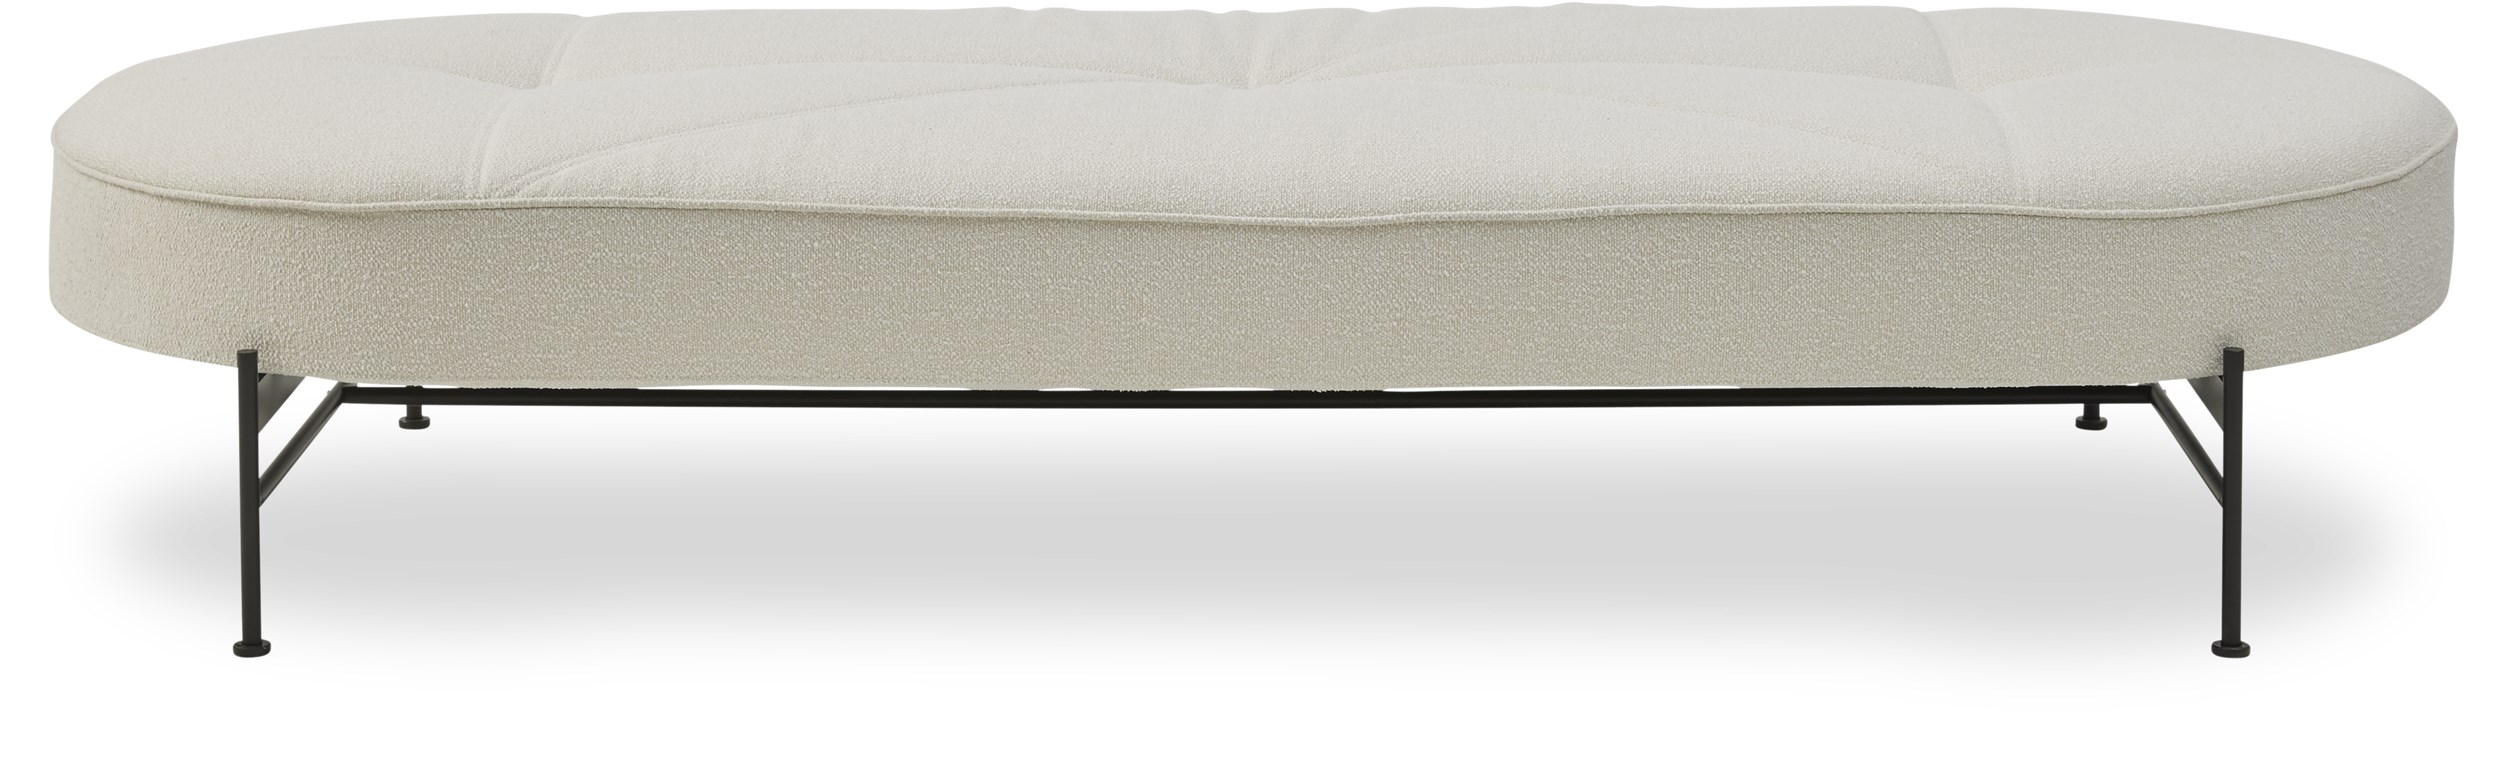 Innovation Living - Linna Daybed - Bouclé 531 Off white och stomme i svart metall